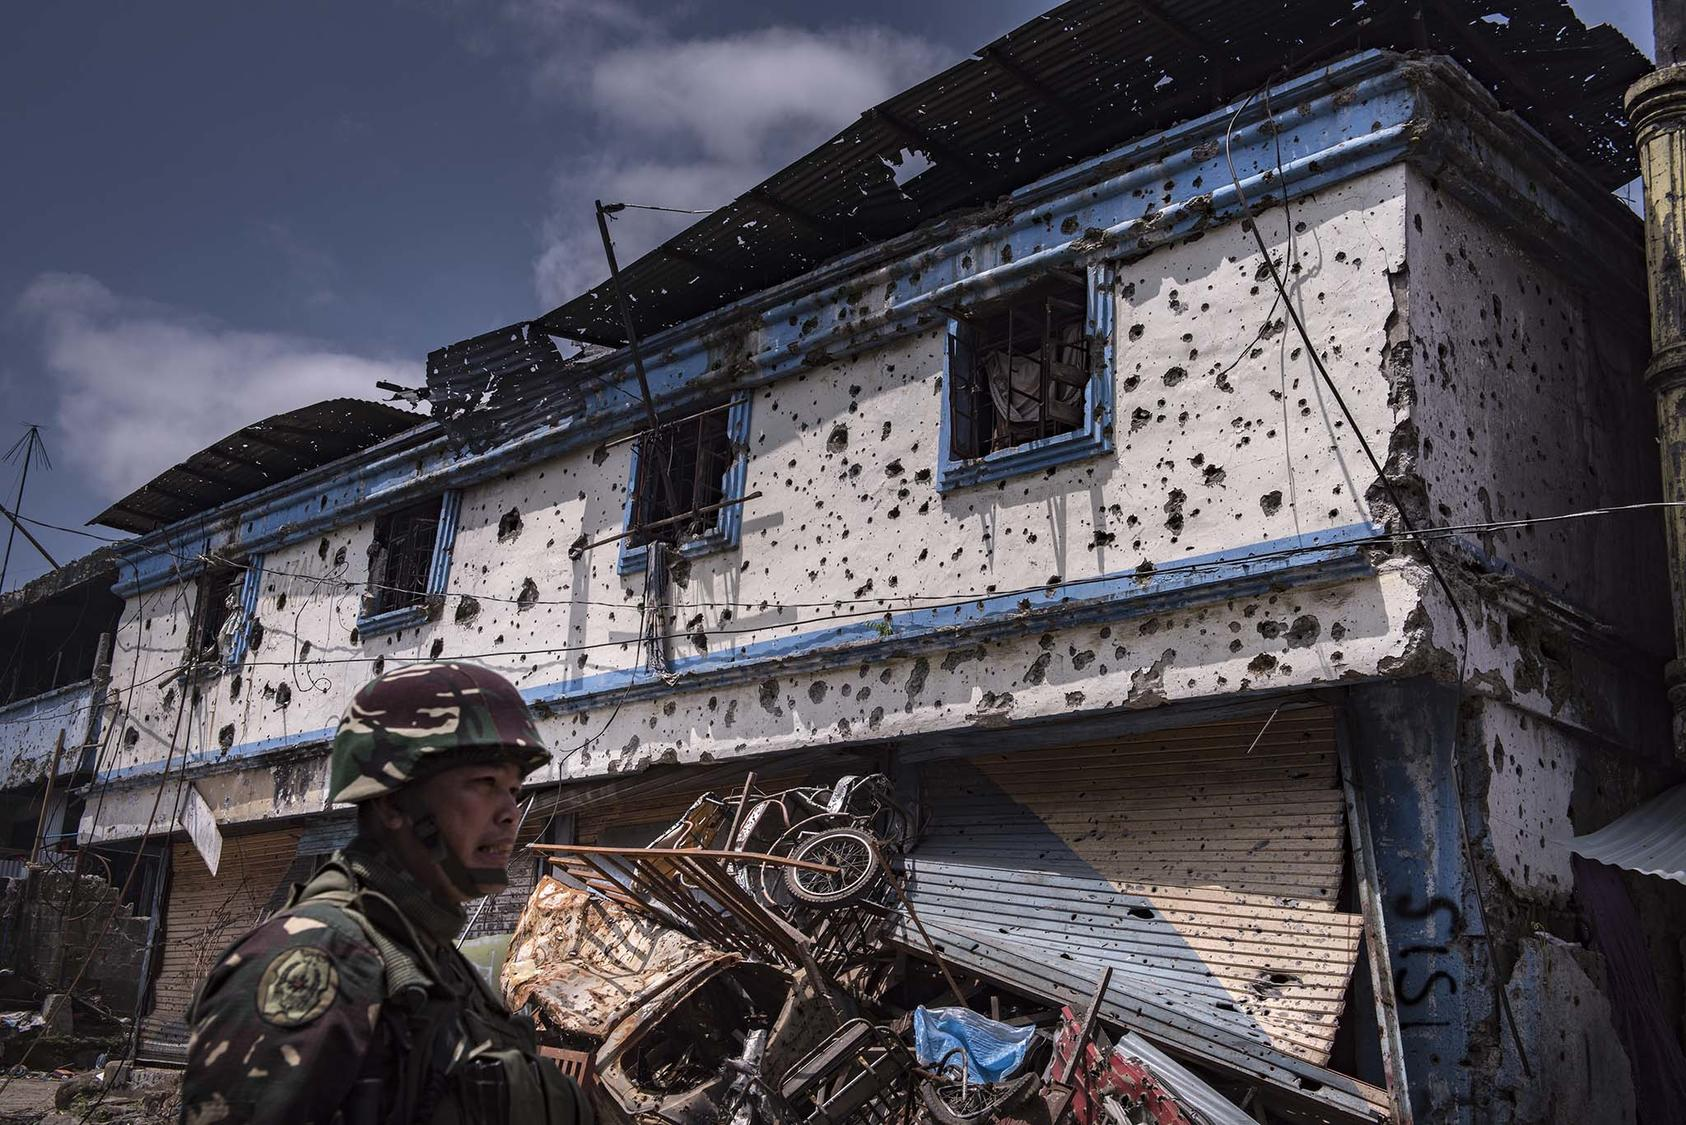 A government soldier outside a ruined building in Marawi, a city in the southern Philippines that was for months under the control of an affiliate of the Islamic State group, Aug. 30, 2017. (Jes Aznar/The New York Times)